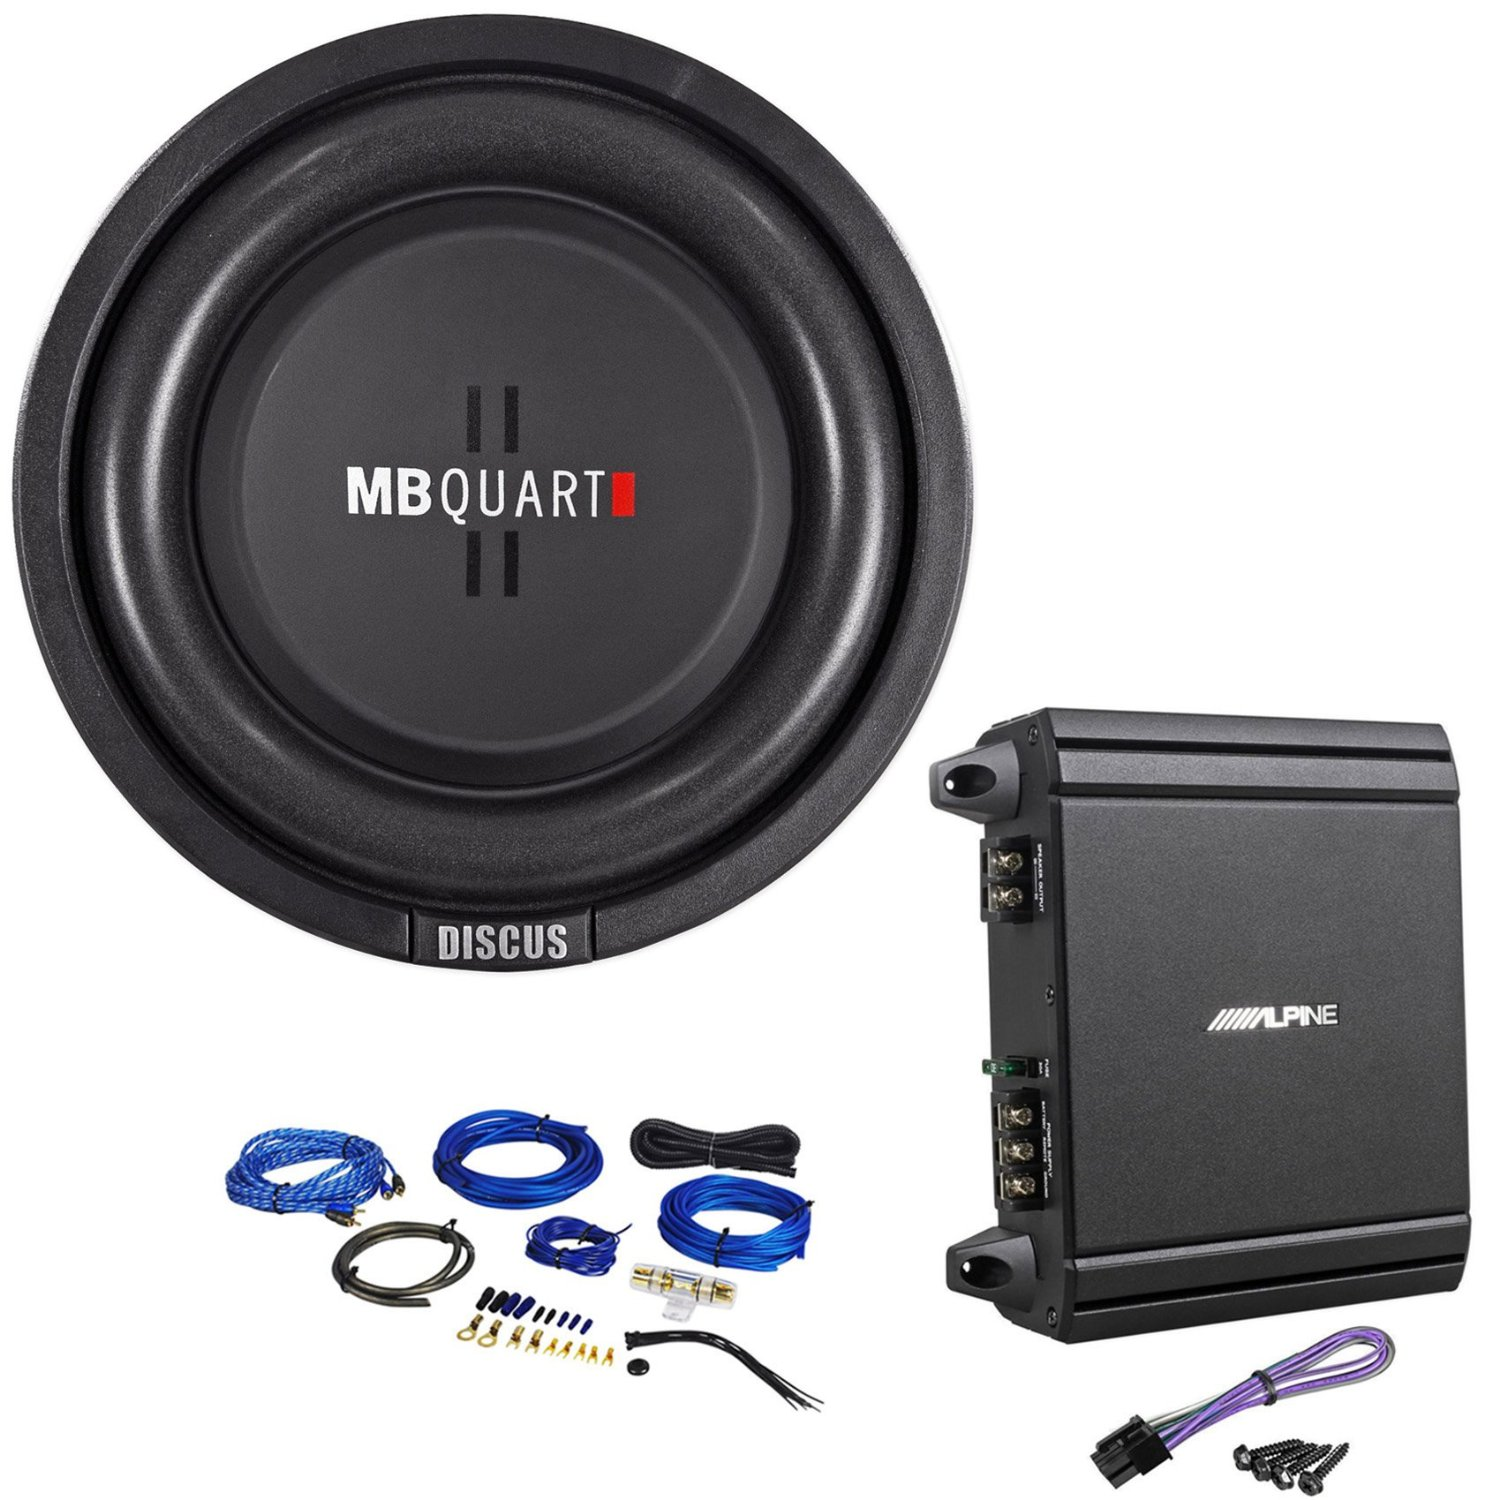 "Package: MB Quart DS1-204 8"" Shallow Mount 400 Watt Peak/200 Watt RMS Dual 4-Ohm Car/Truck Subwoofer + Alpine V-Power MRV-M250 250 Watt Mono Class D Car Amplifier + Rockville RWK81 8 Gauge 2 Channel Complete Wire Kit with RCA Cable"